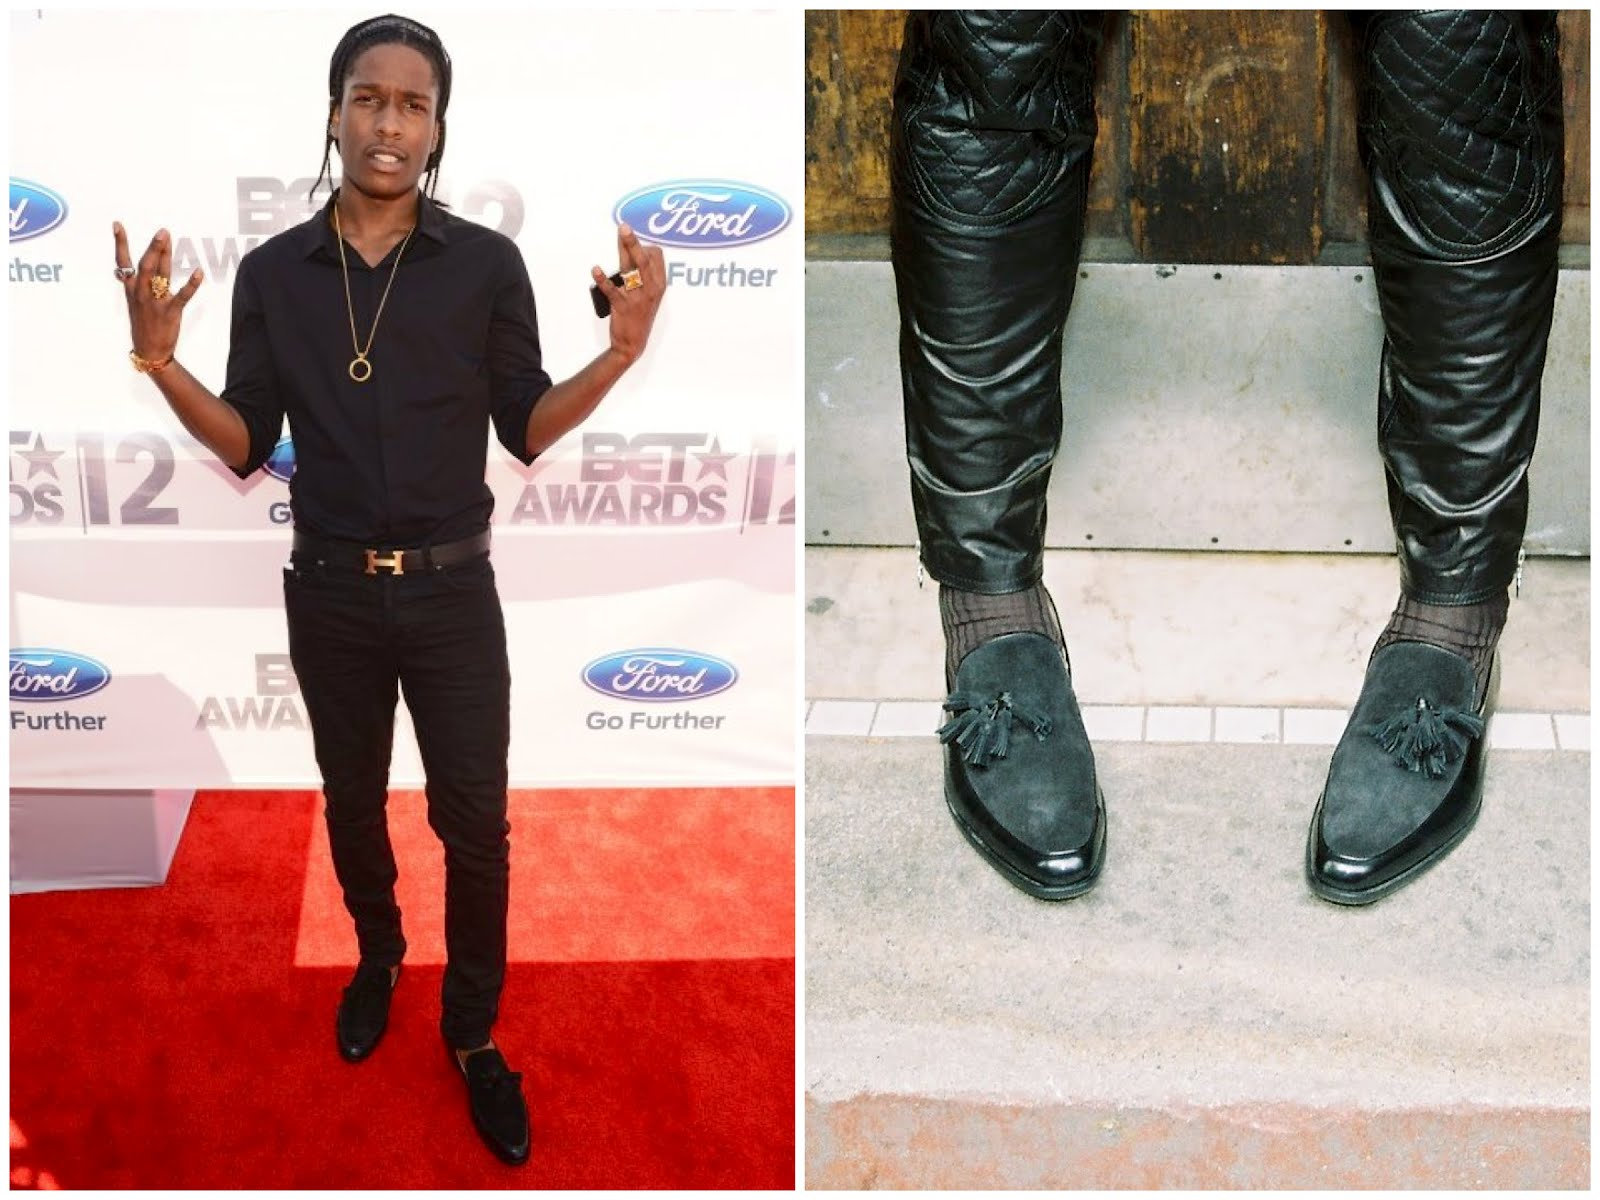 00o00 London Menswear Blogger Celebrity Style A$AP Rocky Bet Awards 2012 Mr Hare Genet shoes tasselled loafers